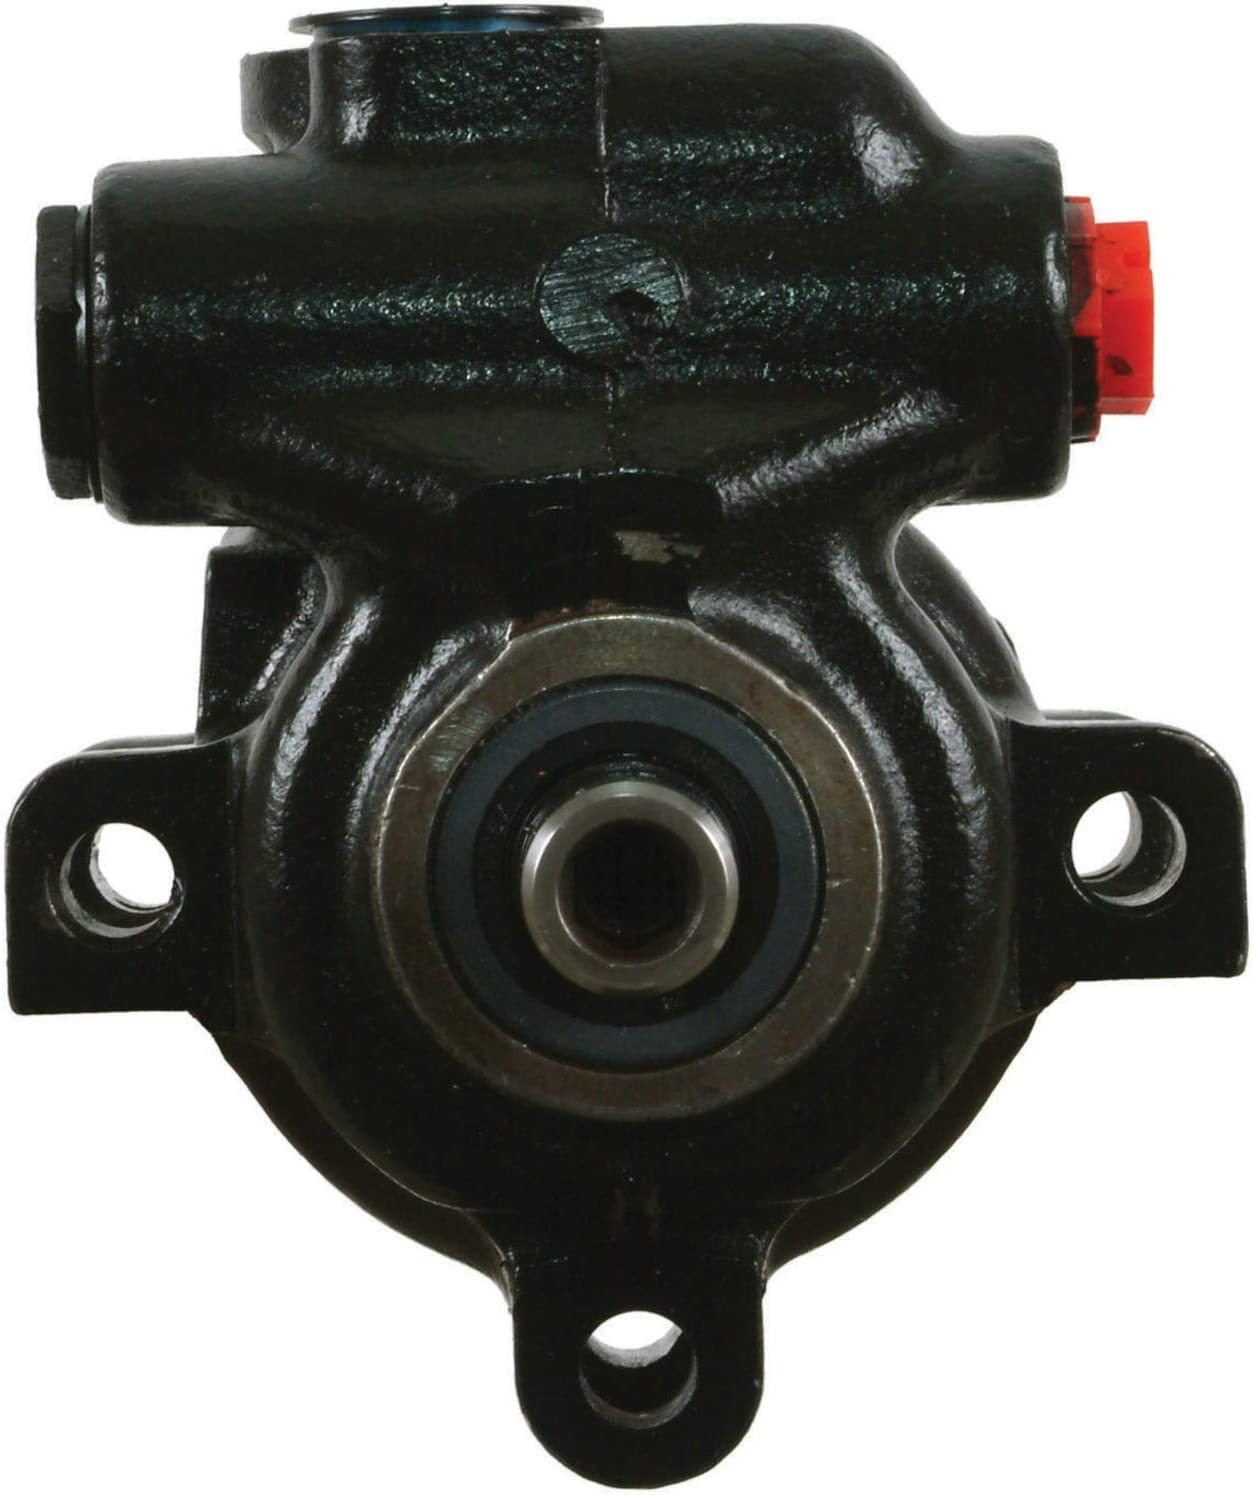 Cardone 20-344 Remanufactured Power Reserv 40% OFF Cheap Sale without Pump Steering Online limited product